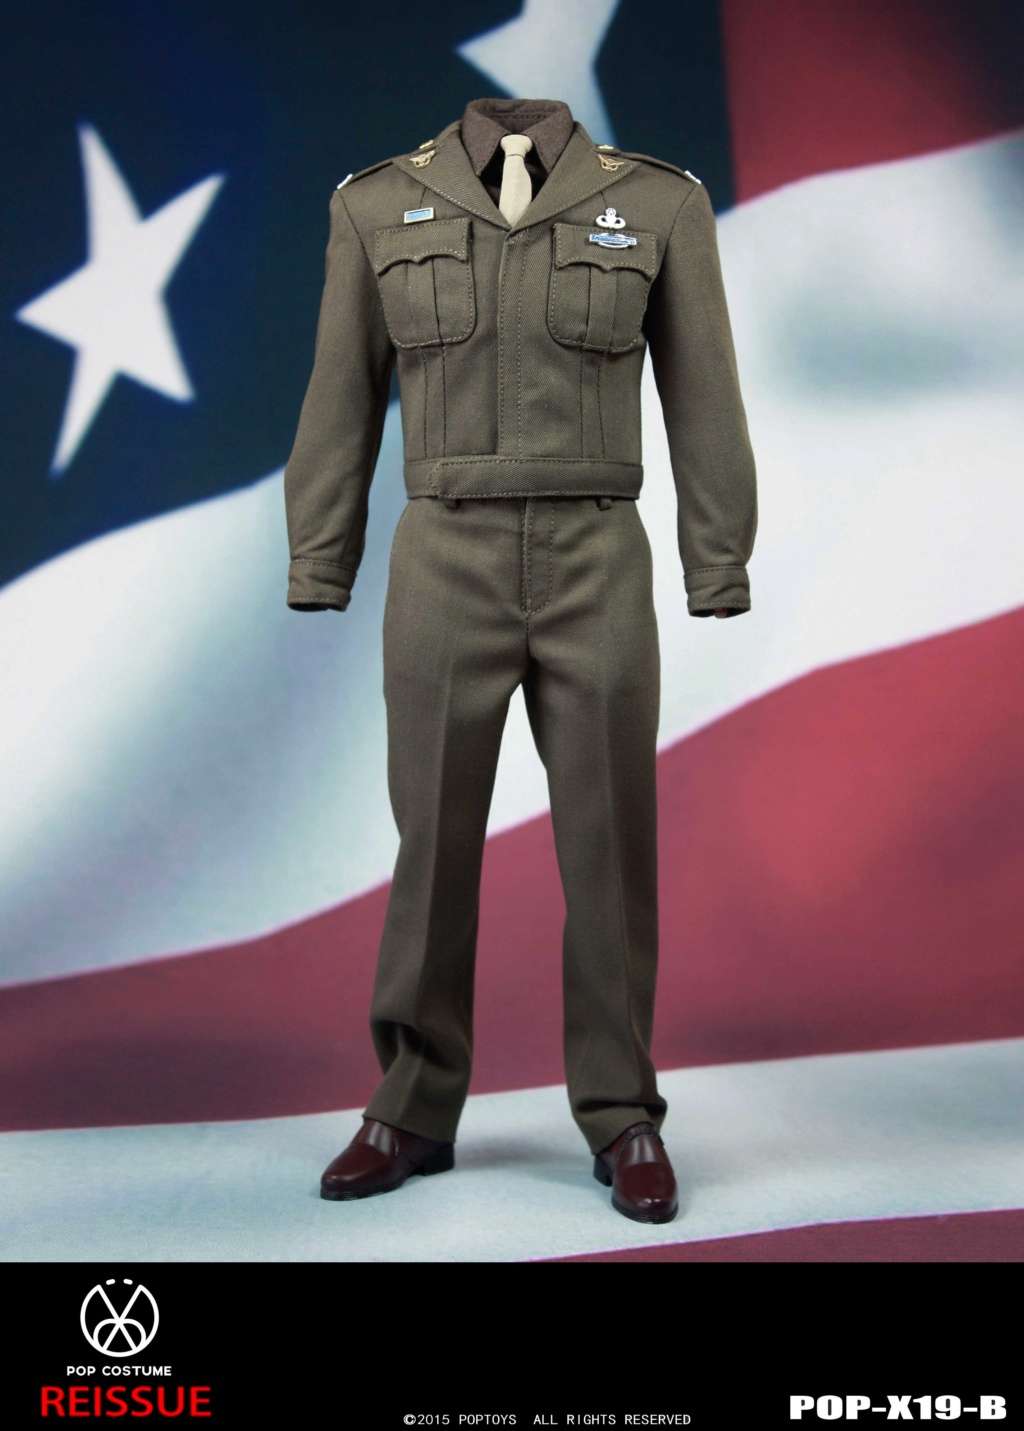 male - NEW PRODUCT: POPTOYS: 1/6 Series X19 - World War II Golden Age US Army Uniform Uniform Set - B (Reprinted in 2019) 21301710